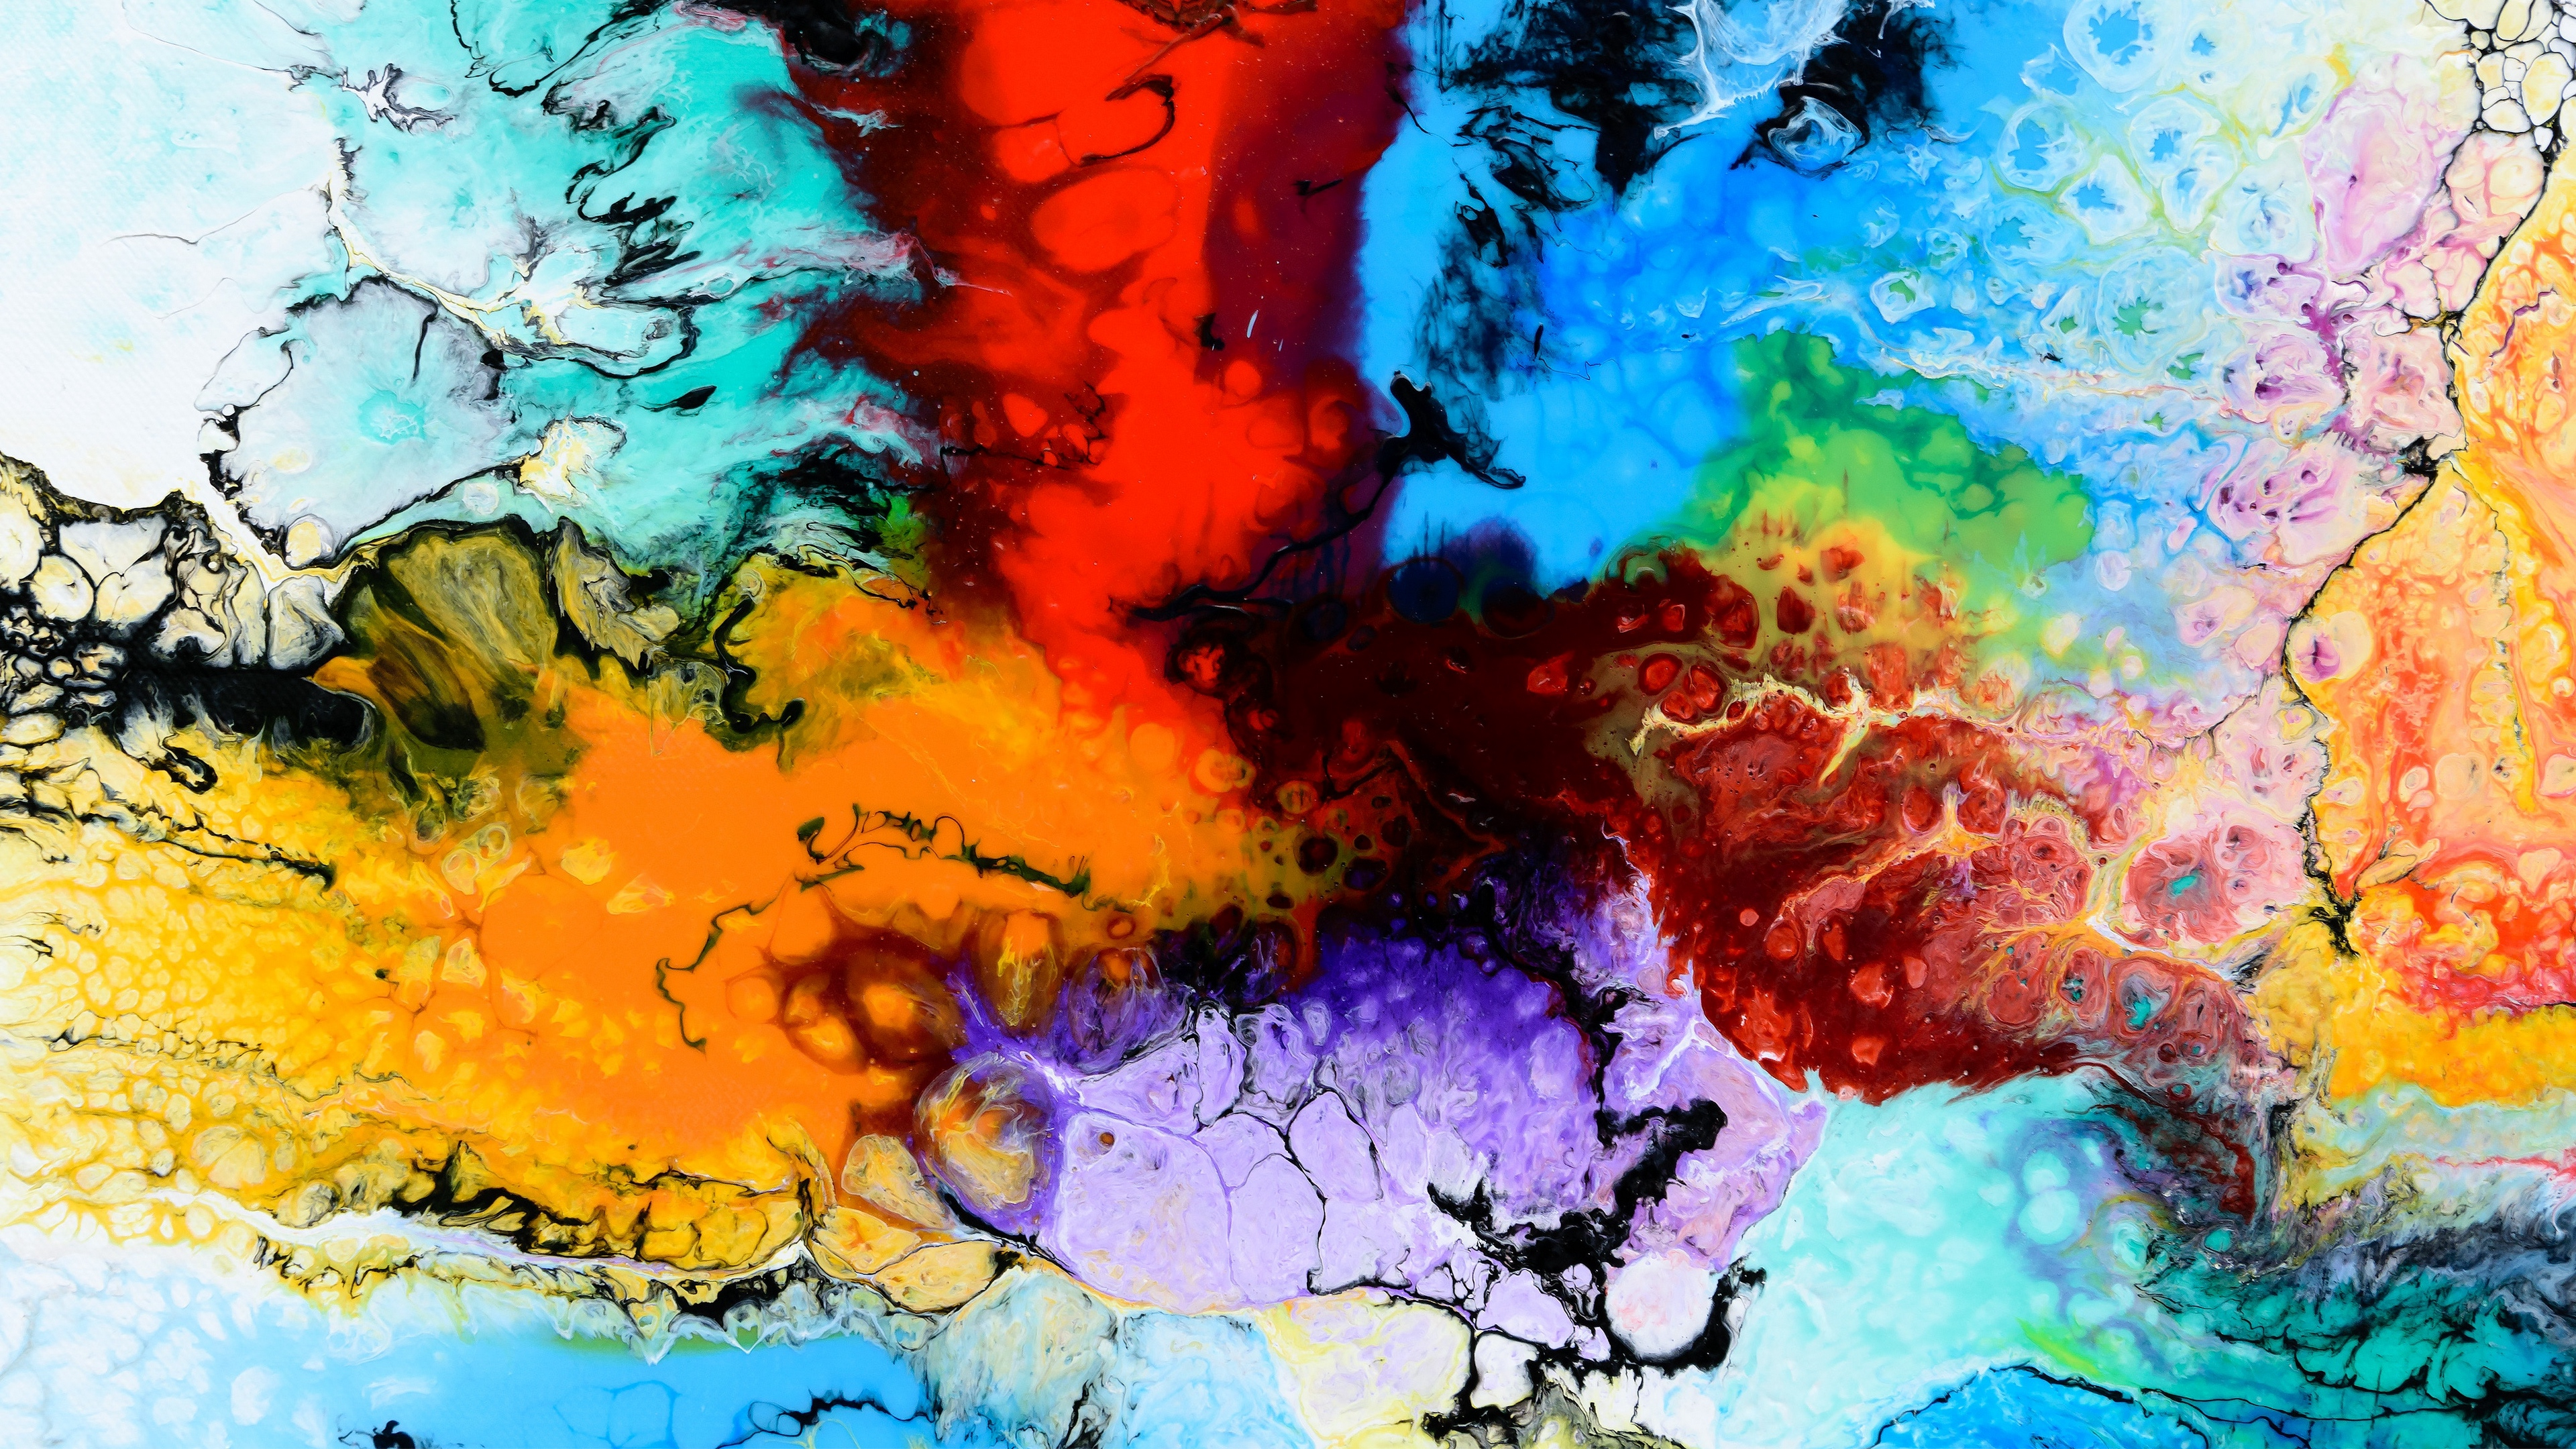 paint stains multicolored 4k 1539369405 - paint, stains, multicolored 4k - stains, Paint, multicolored